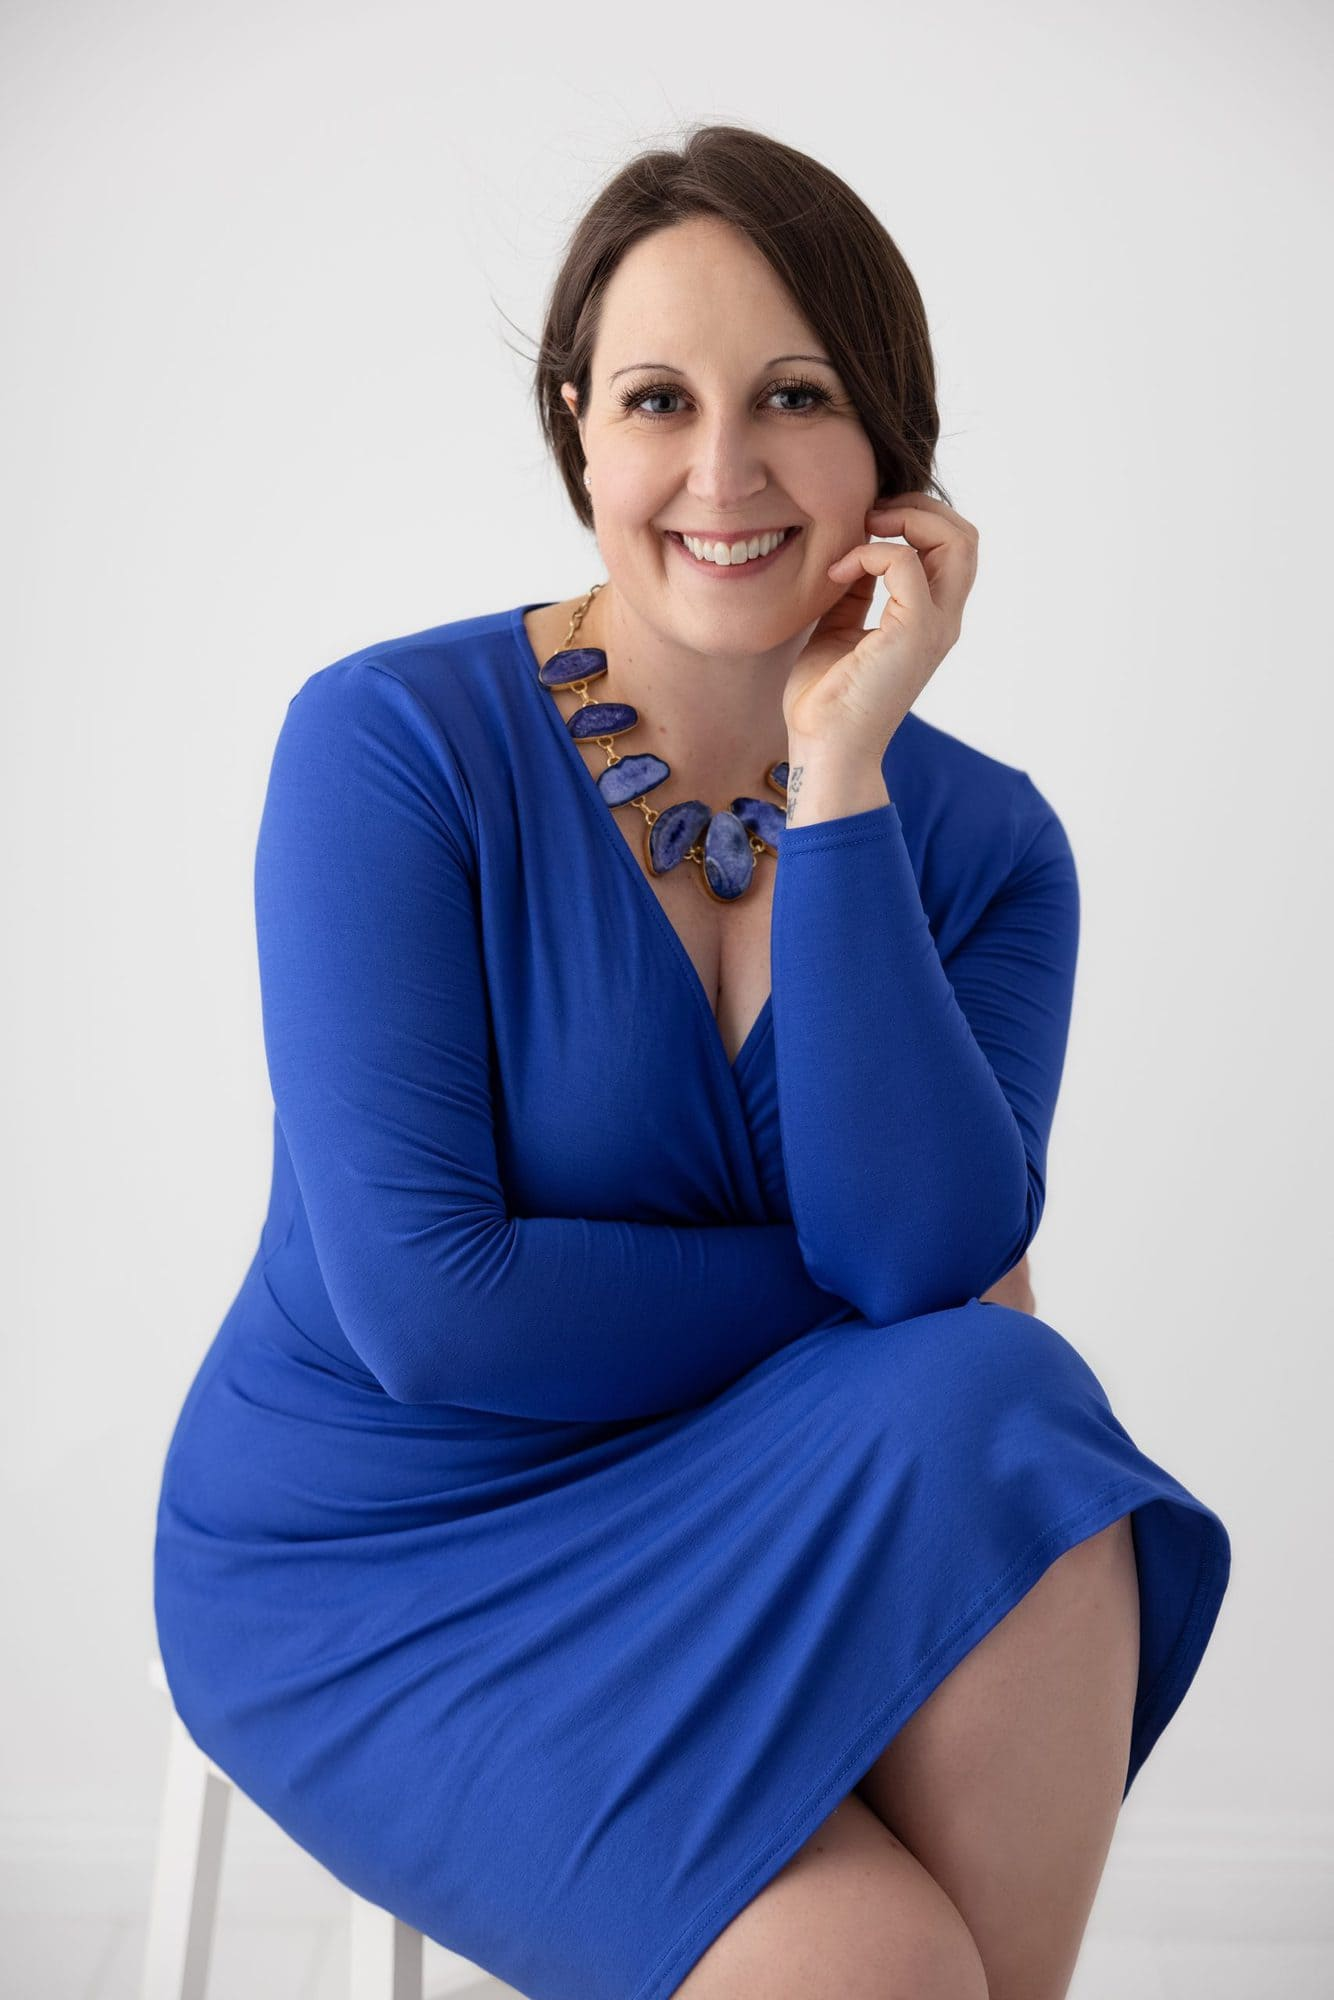 Woman in Blue dress and necklace sits posing during her Personal Branding Photo shoot in Suffolk